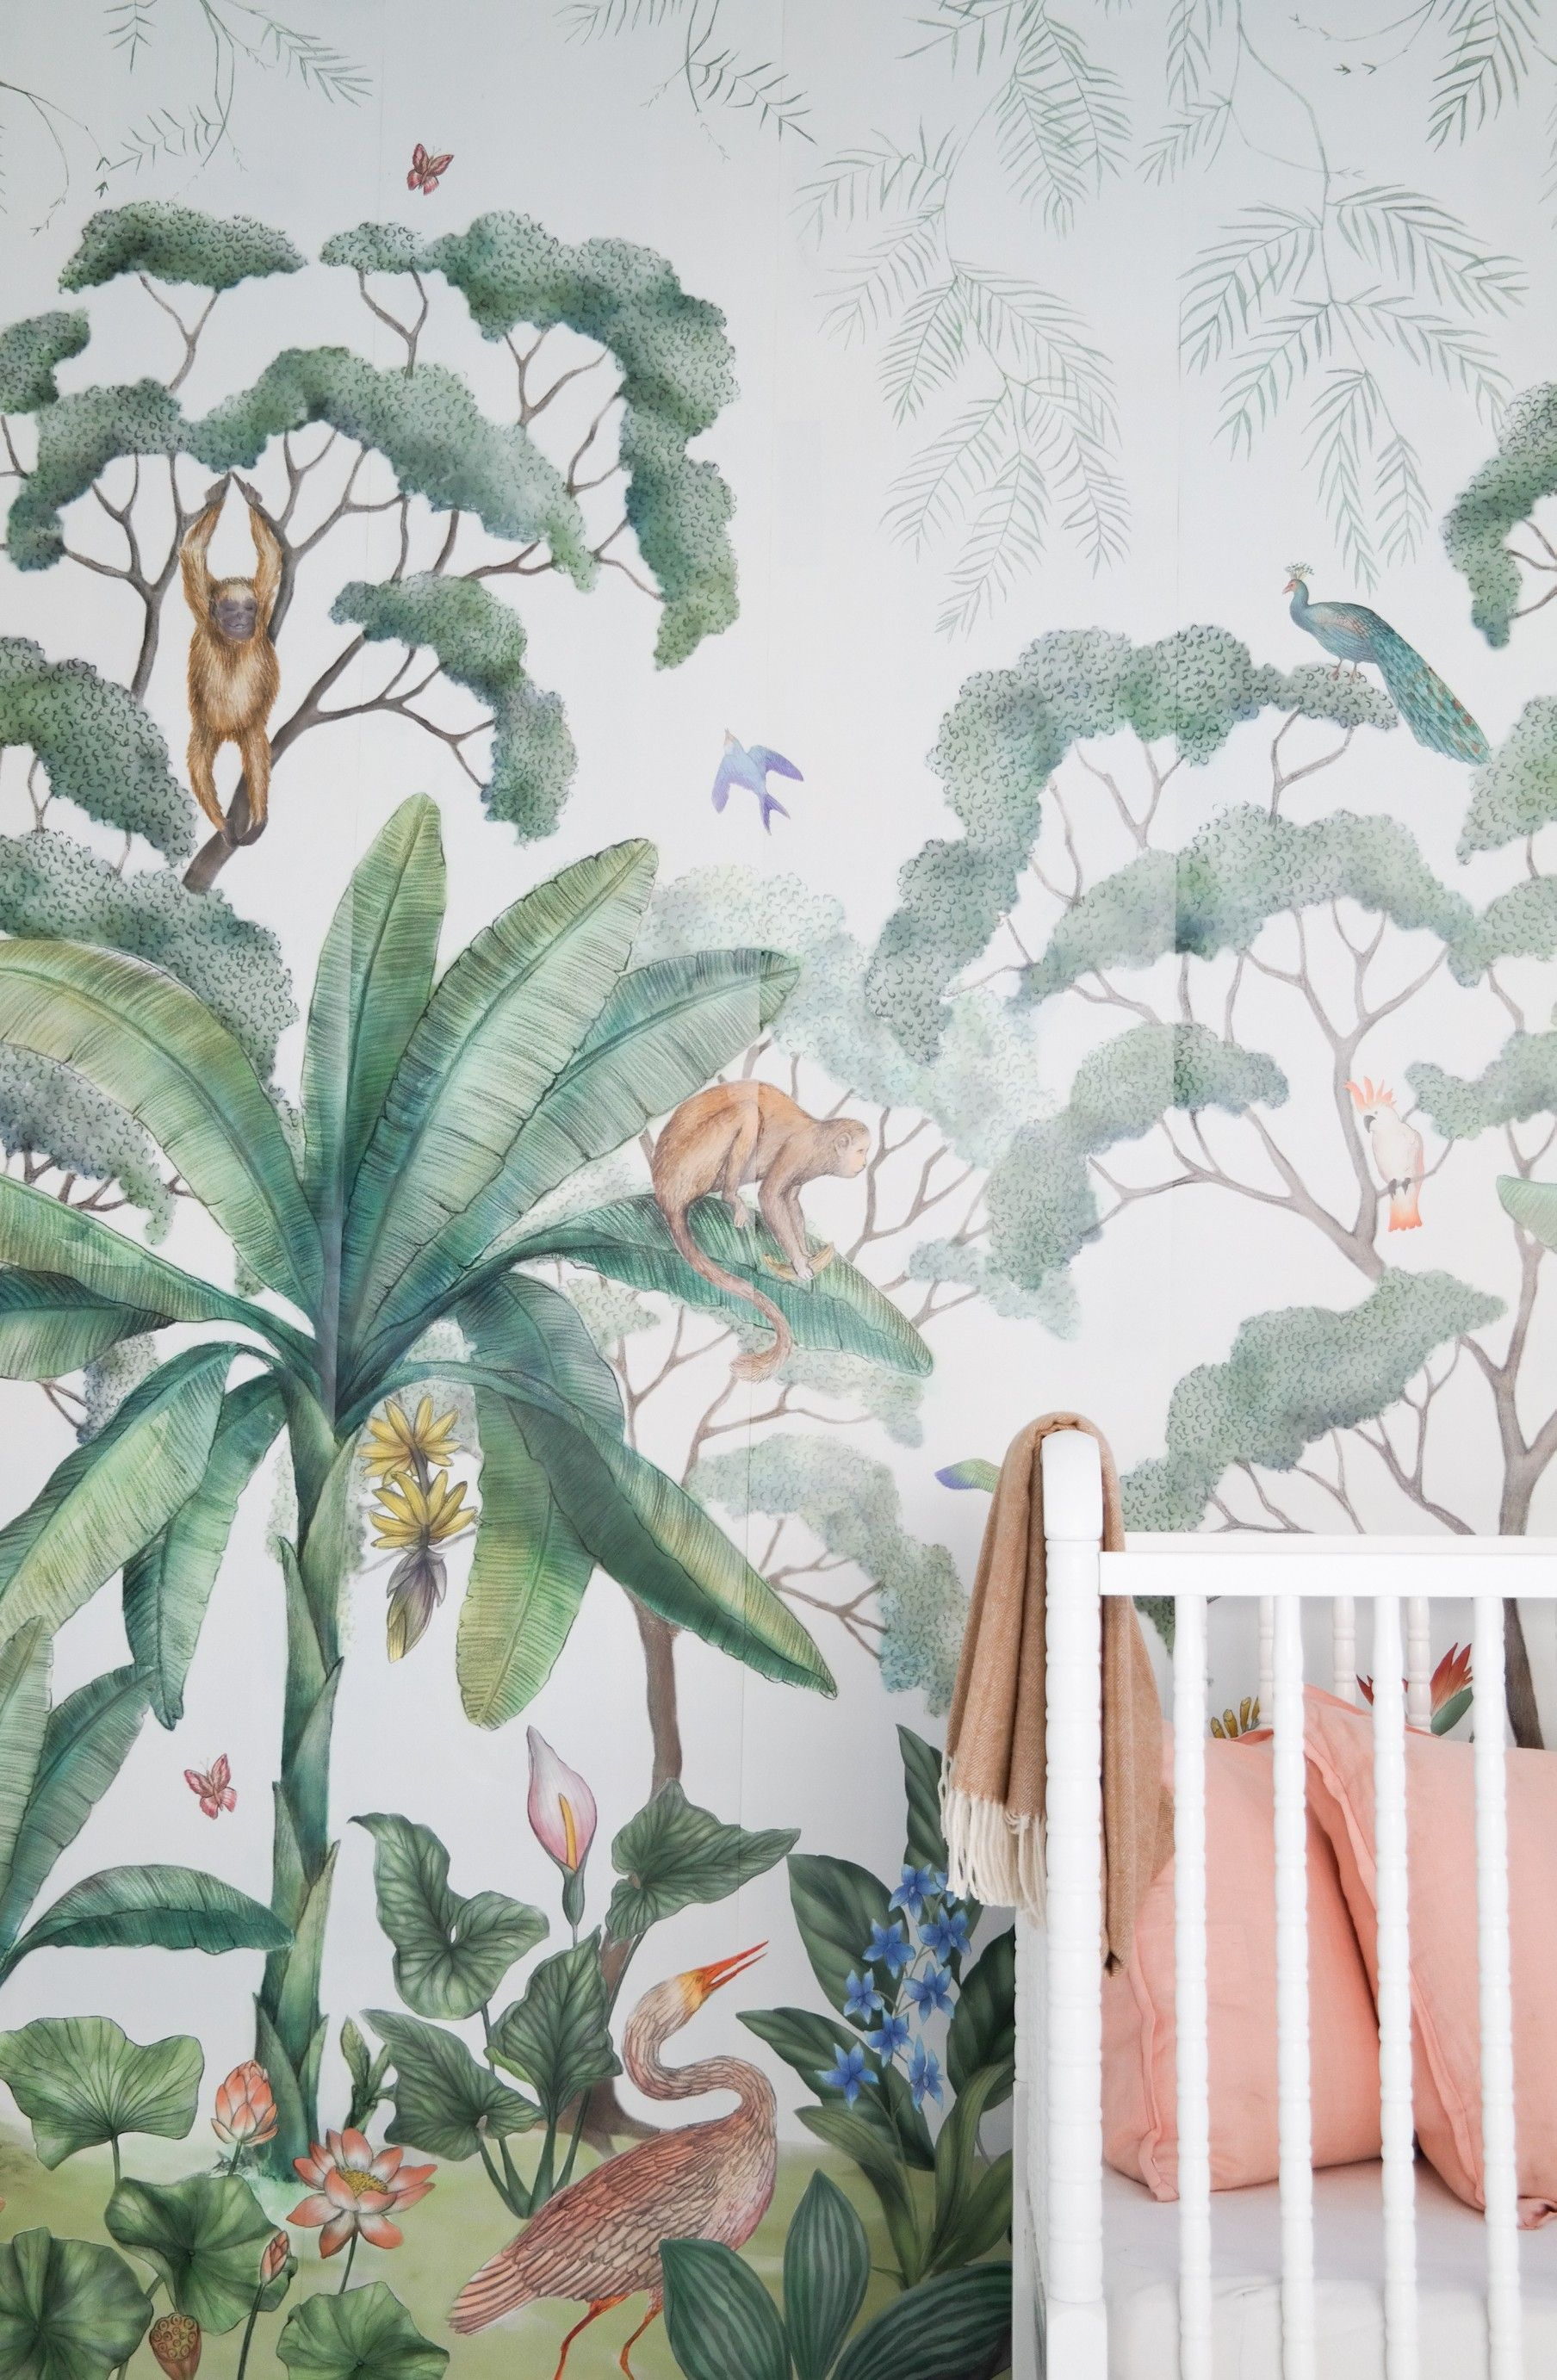 Lush And Full Of Life This Jungle Wallpaper Will Inspire The Decor For Your Entire E Perfect A Nursery Needing Little Imagination Or An Entry